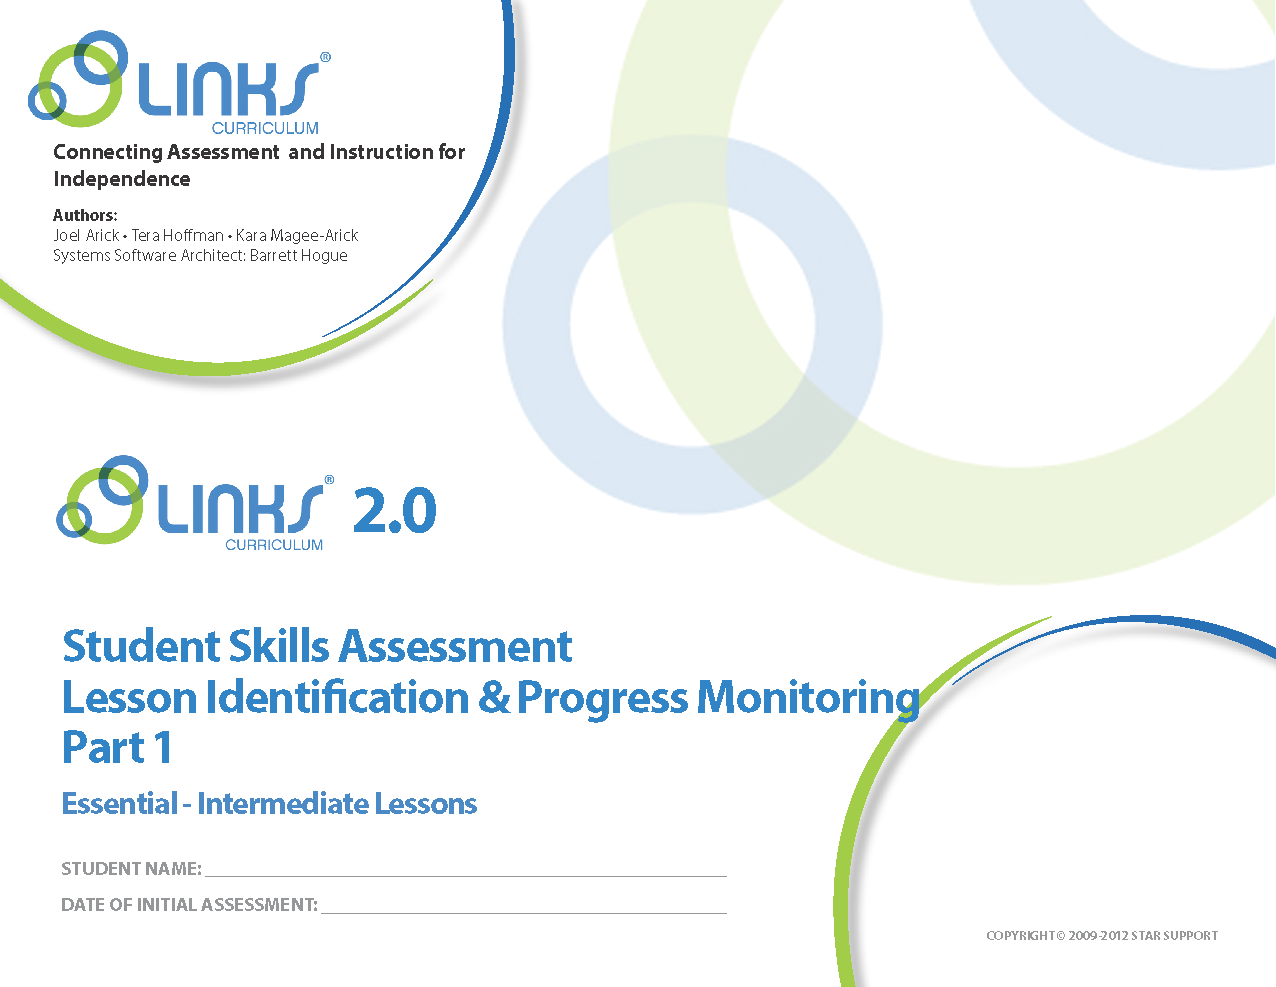 Links Lesson Assessment - Essential